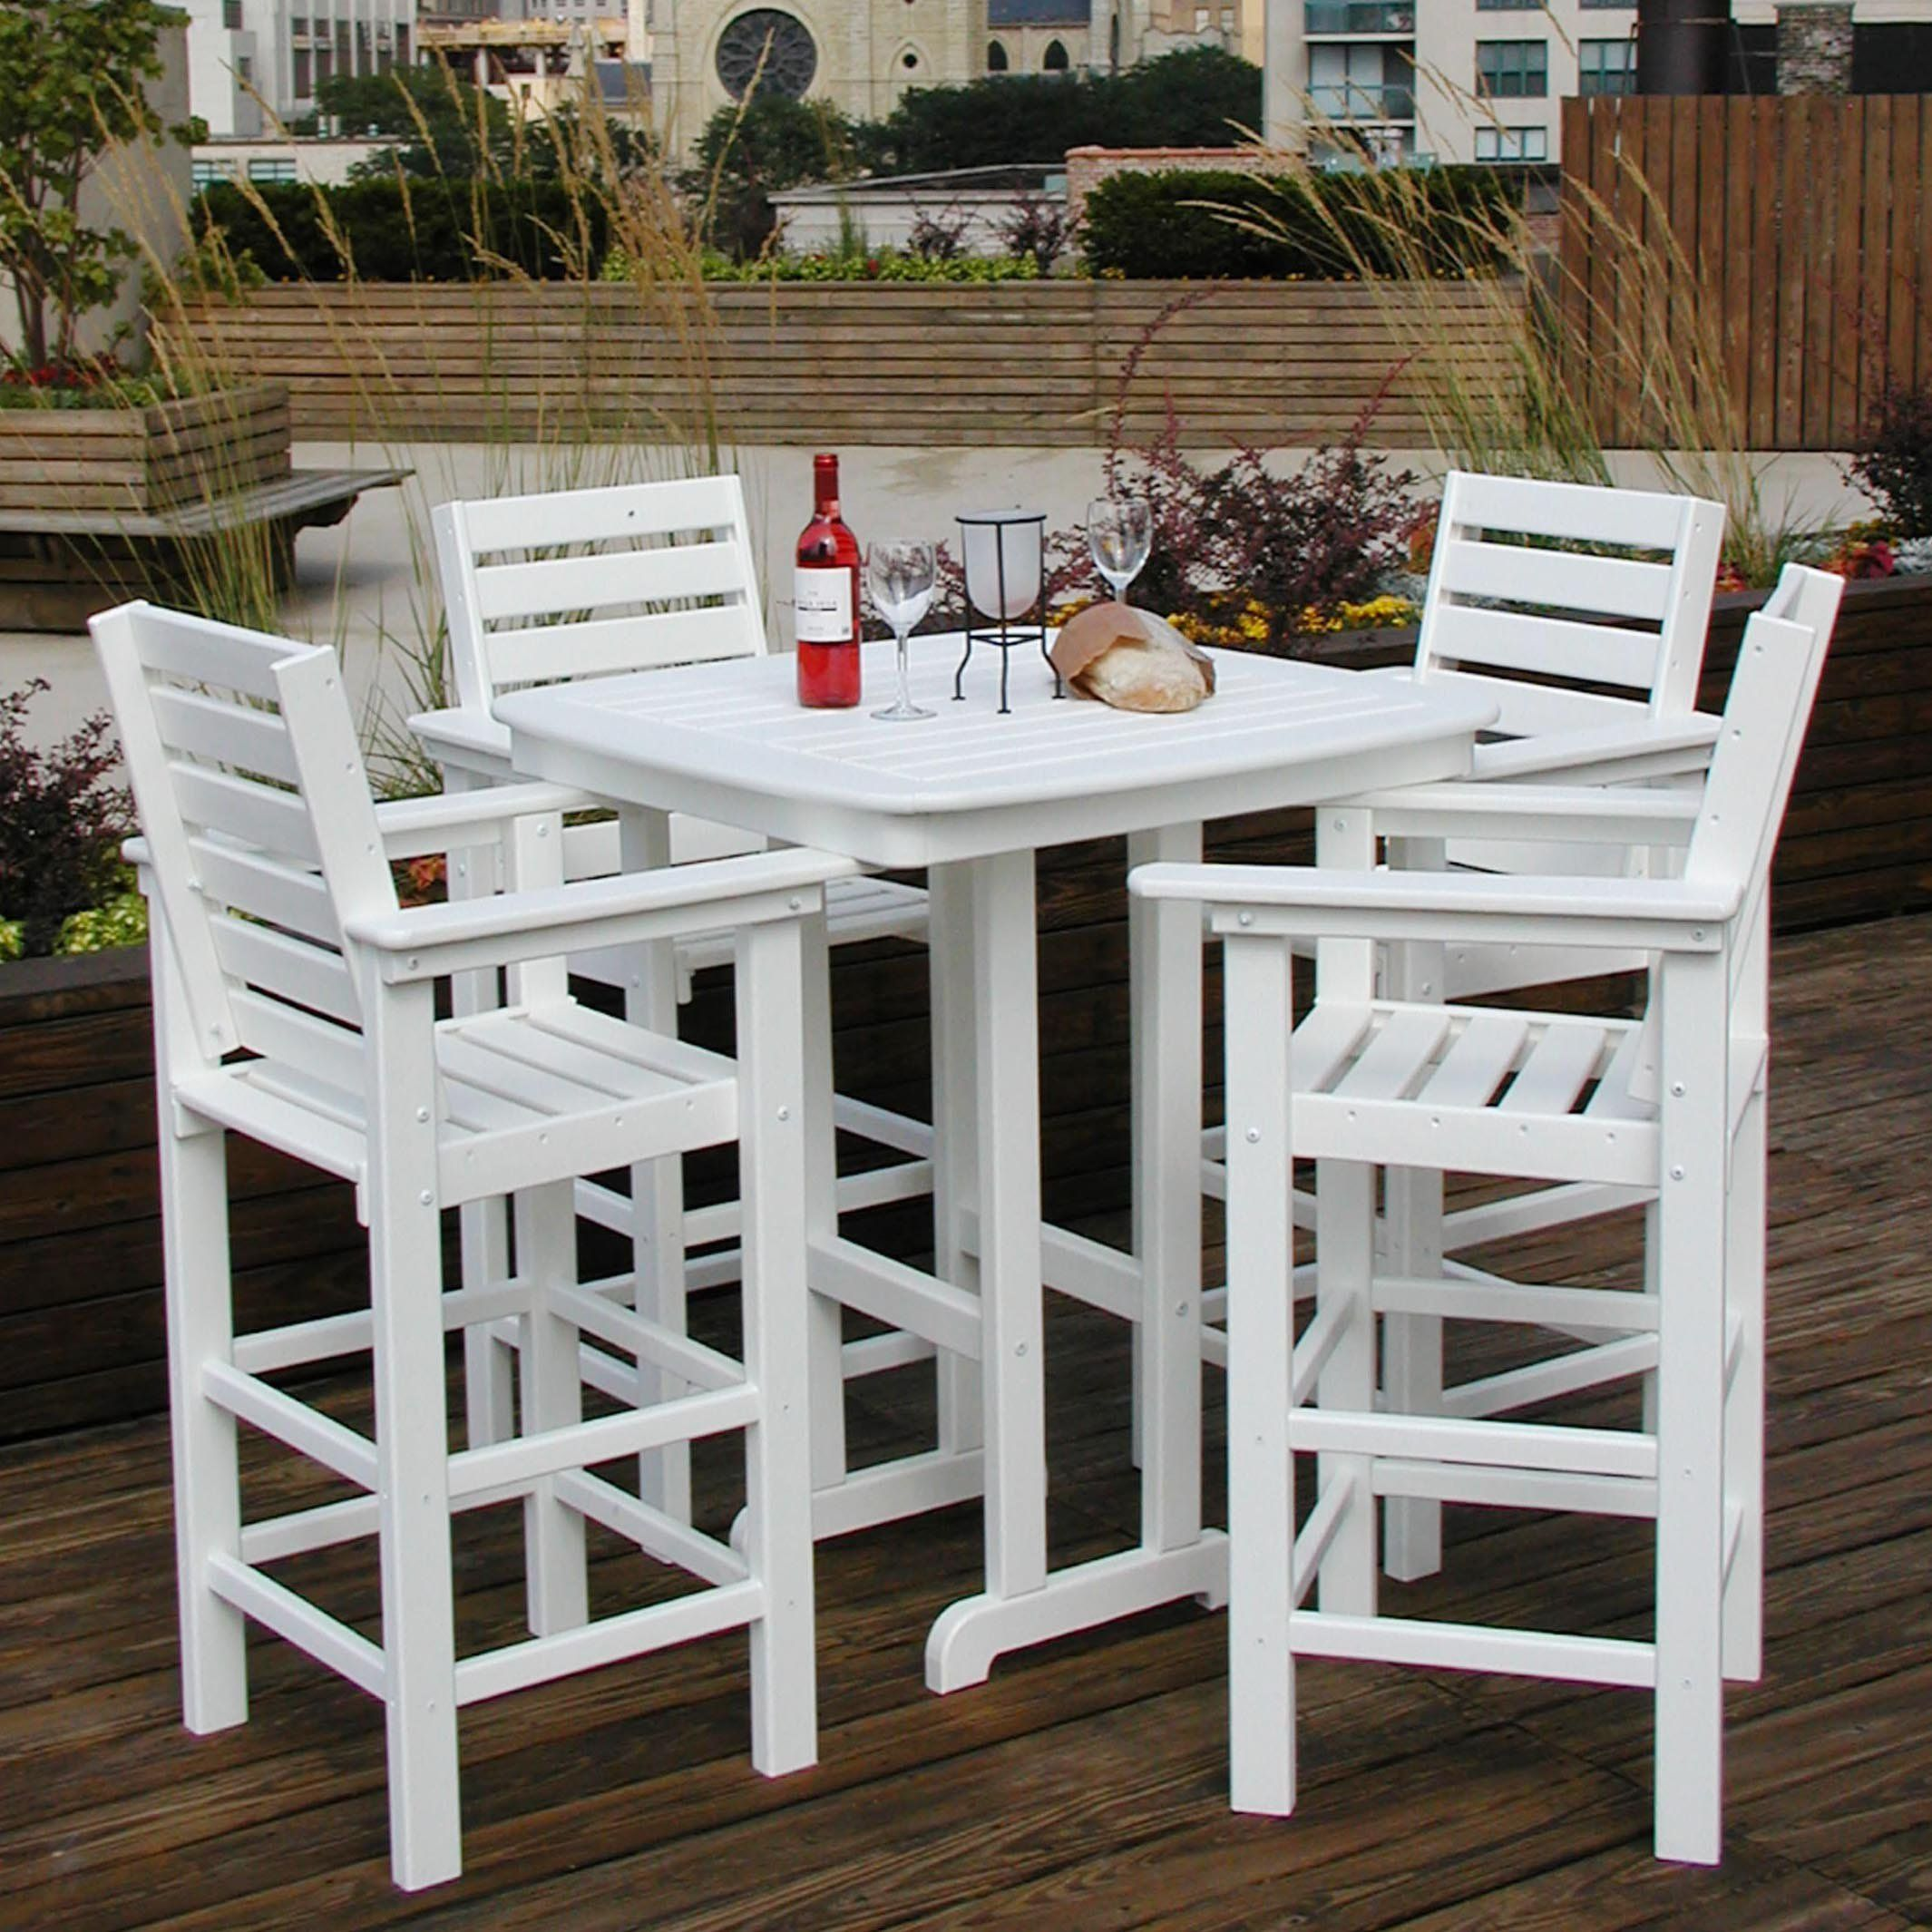 Outdoor Polywooda Captain 5 Pc Recycled Plastic Bar Height Dining